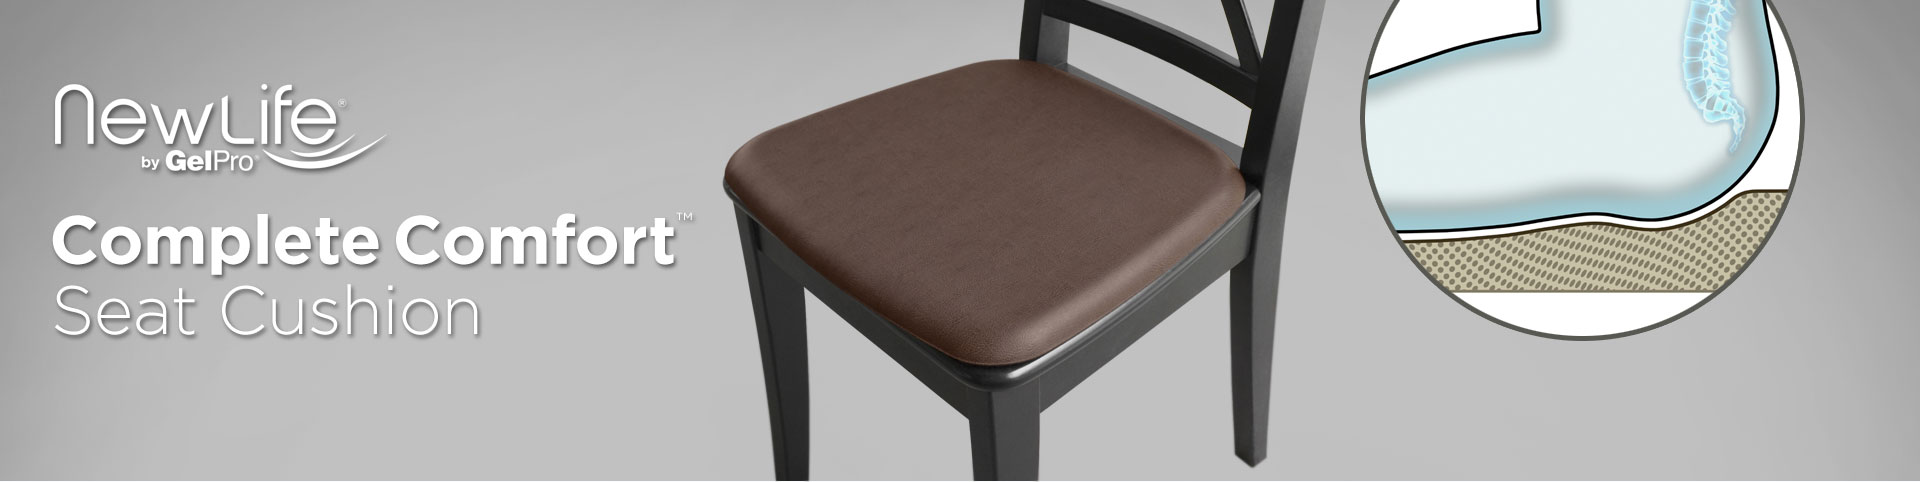 chair pad foam red leather reception chairs high density seat cushion ergonomic constructed with energy return used in gelpro s newlife comfort mats the complete is extra supportive so your weight properly